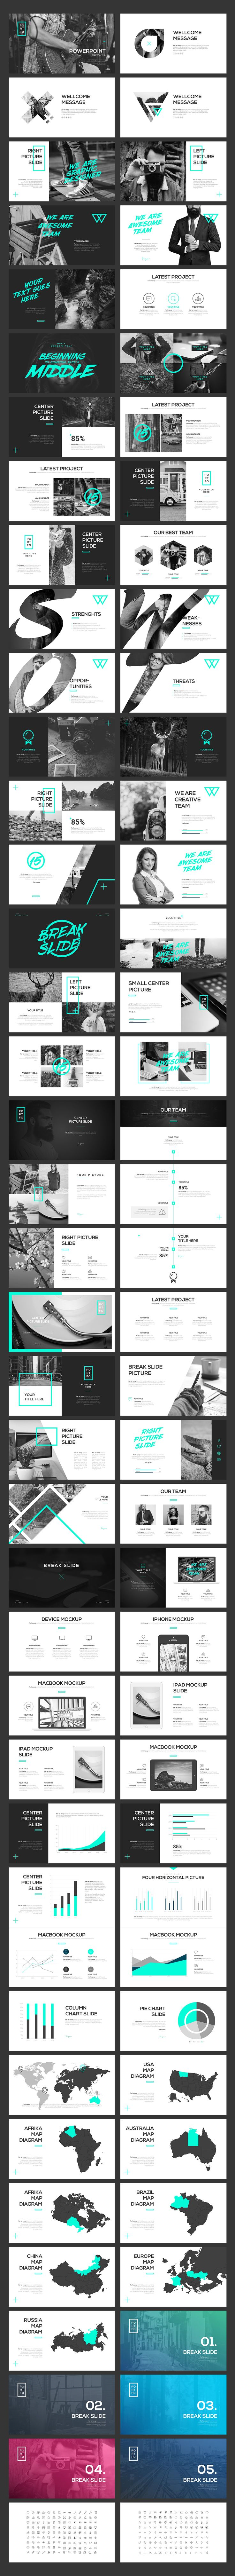 Template de présentation. Beau #look pour un site web. Presentation template. would be a great look for a #website.